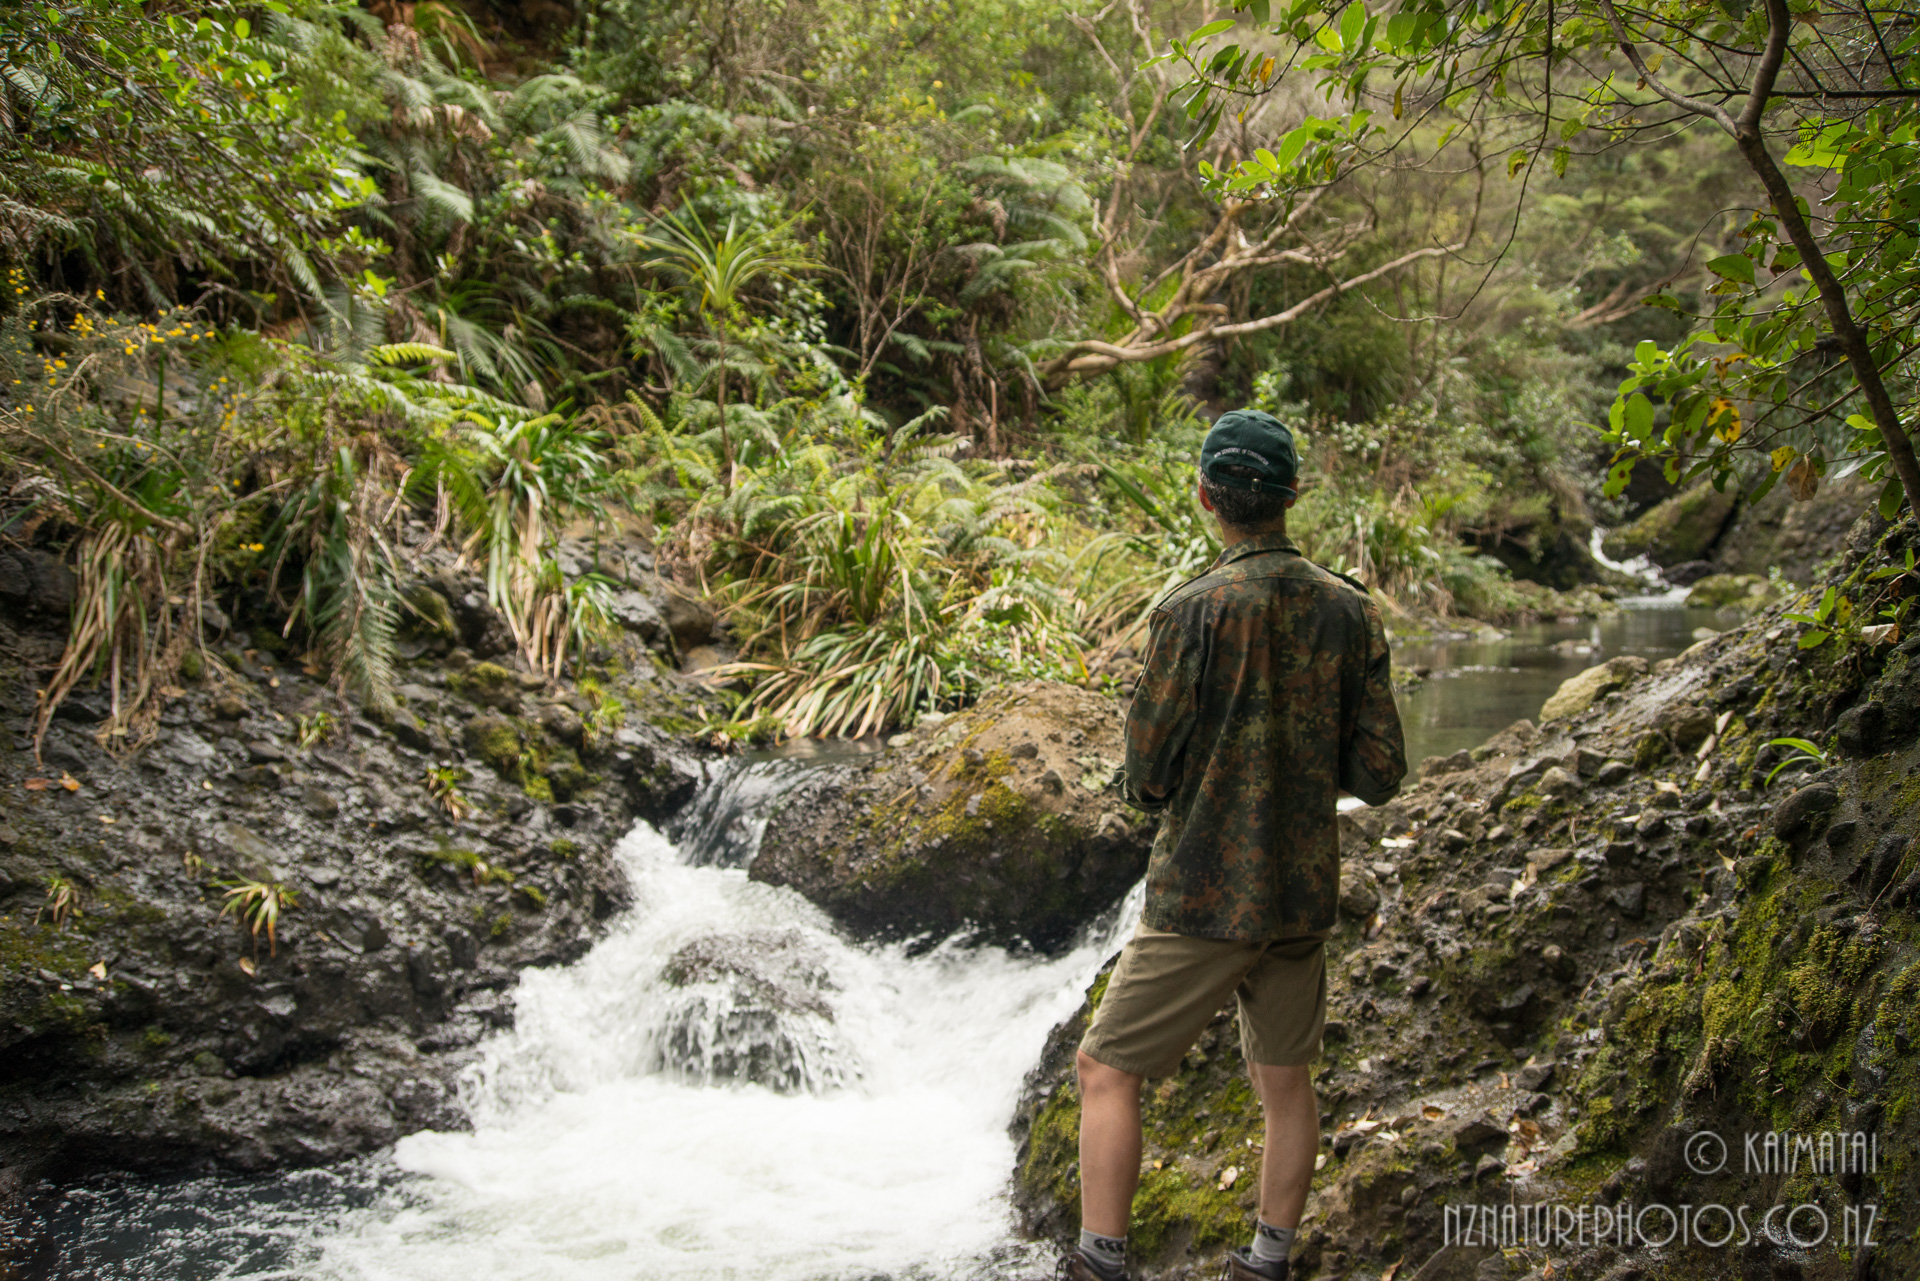 Featured image: Walking in water: First trip to the Pararaha Stream